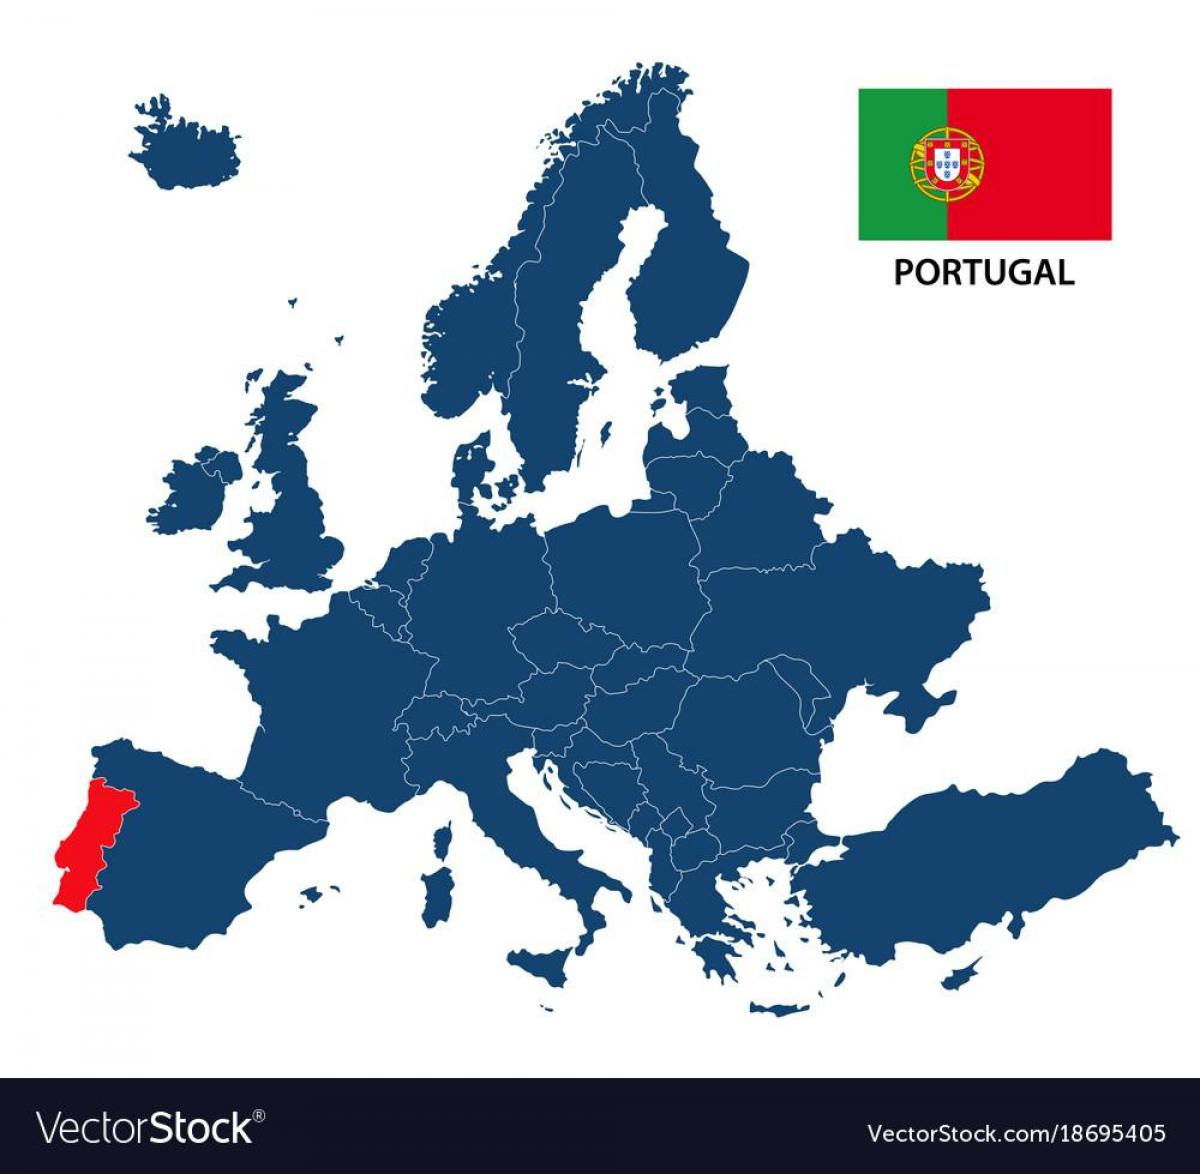 Europe Map Portugal Map Of Portugal In Europe Southern Europe - Map of southern europe